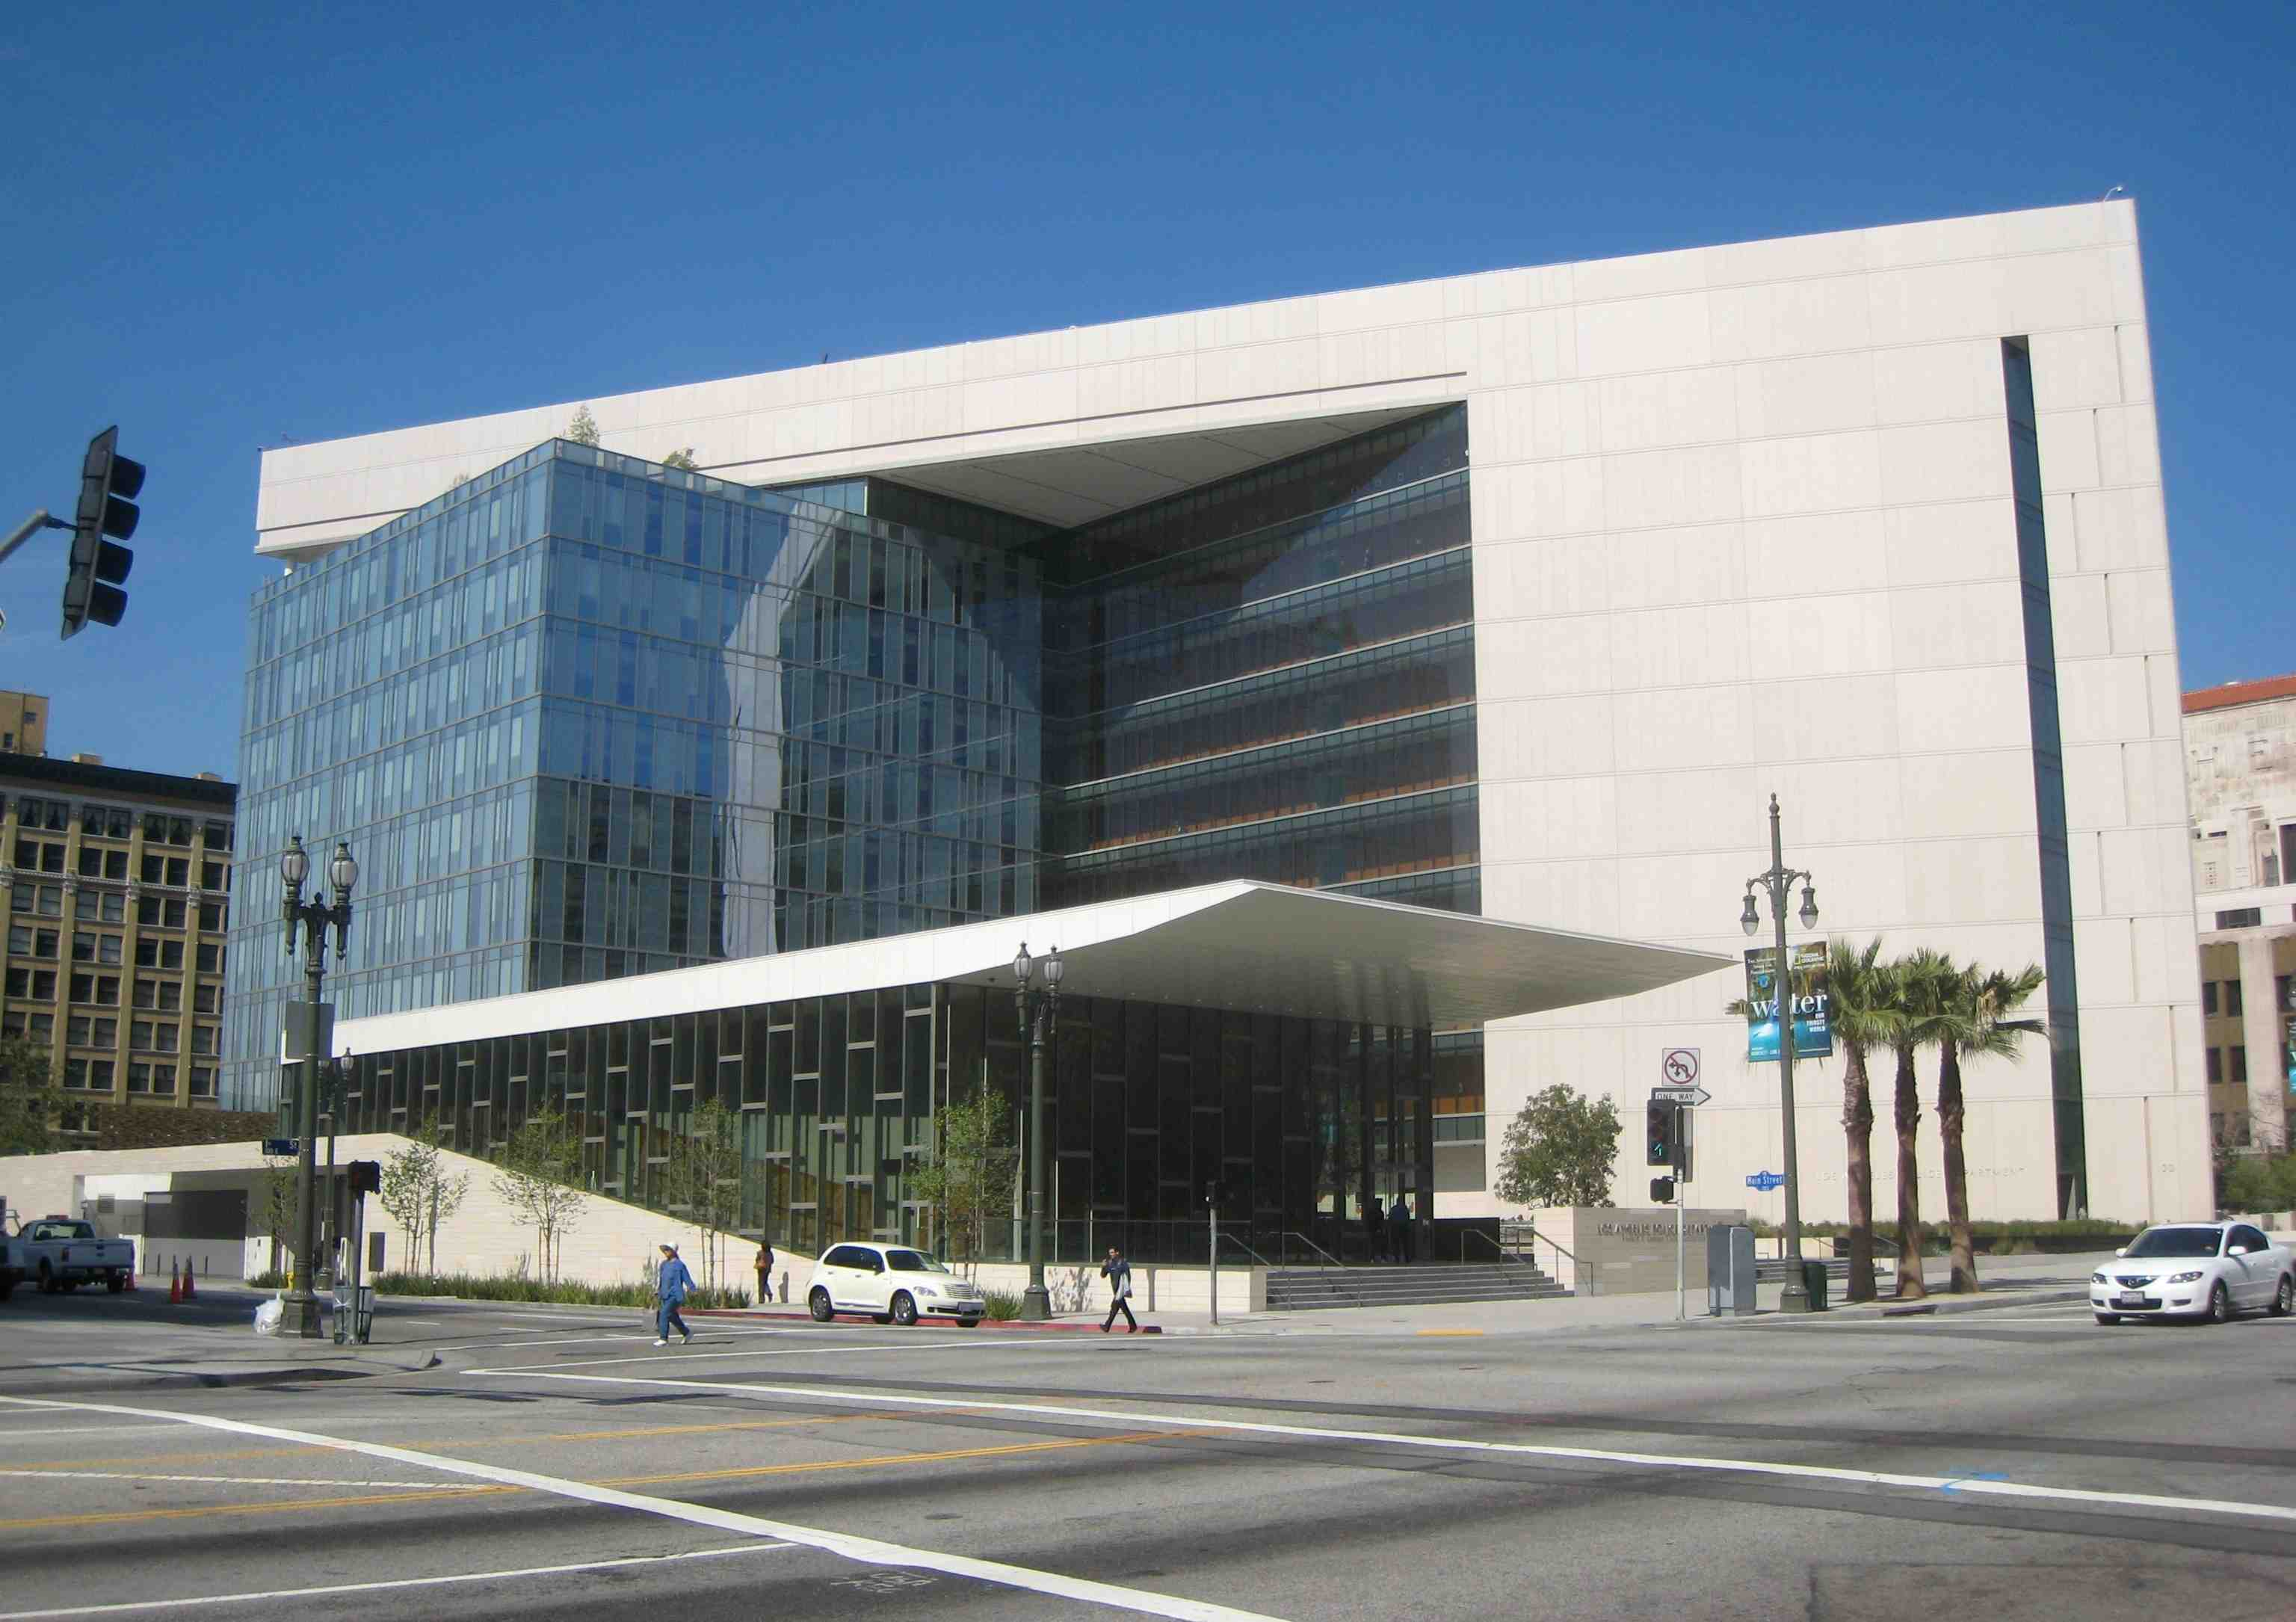 Lapd Building Demonstrates Environmental Leadership And